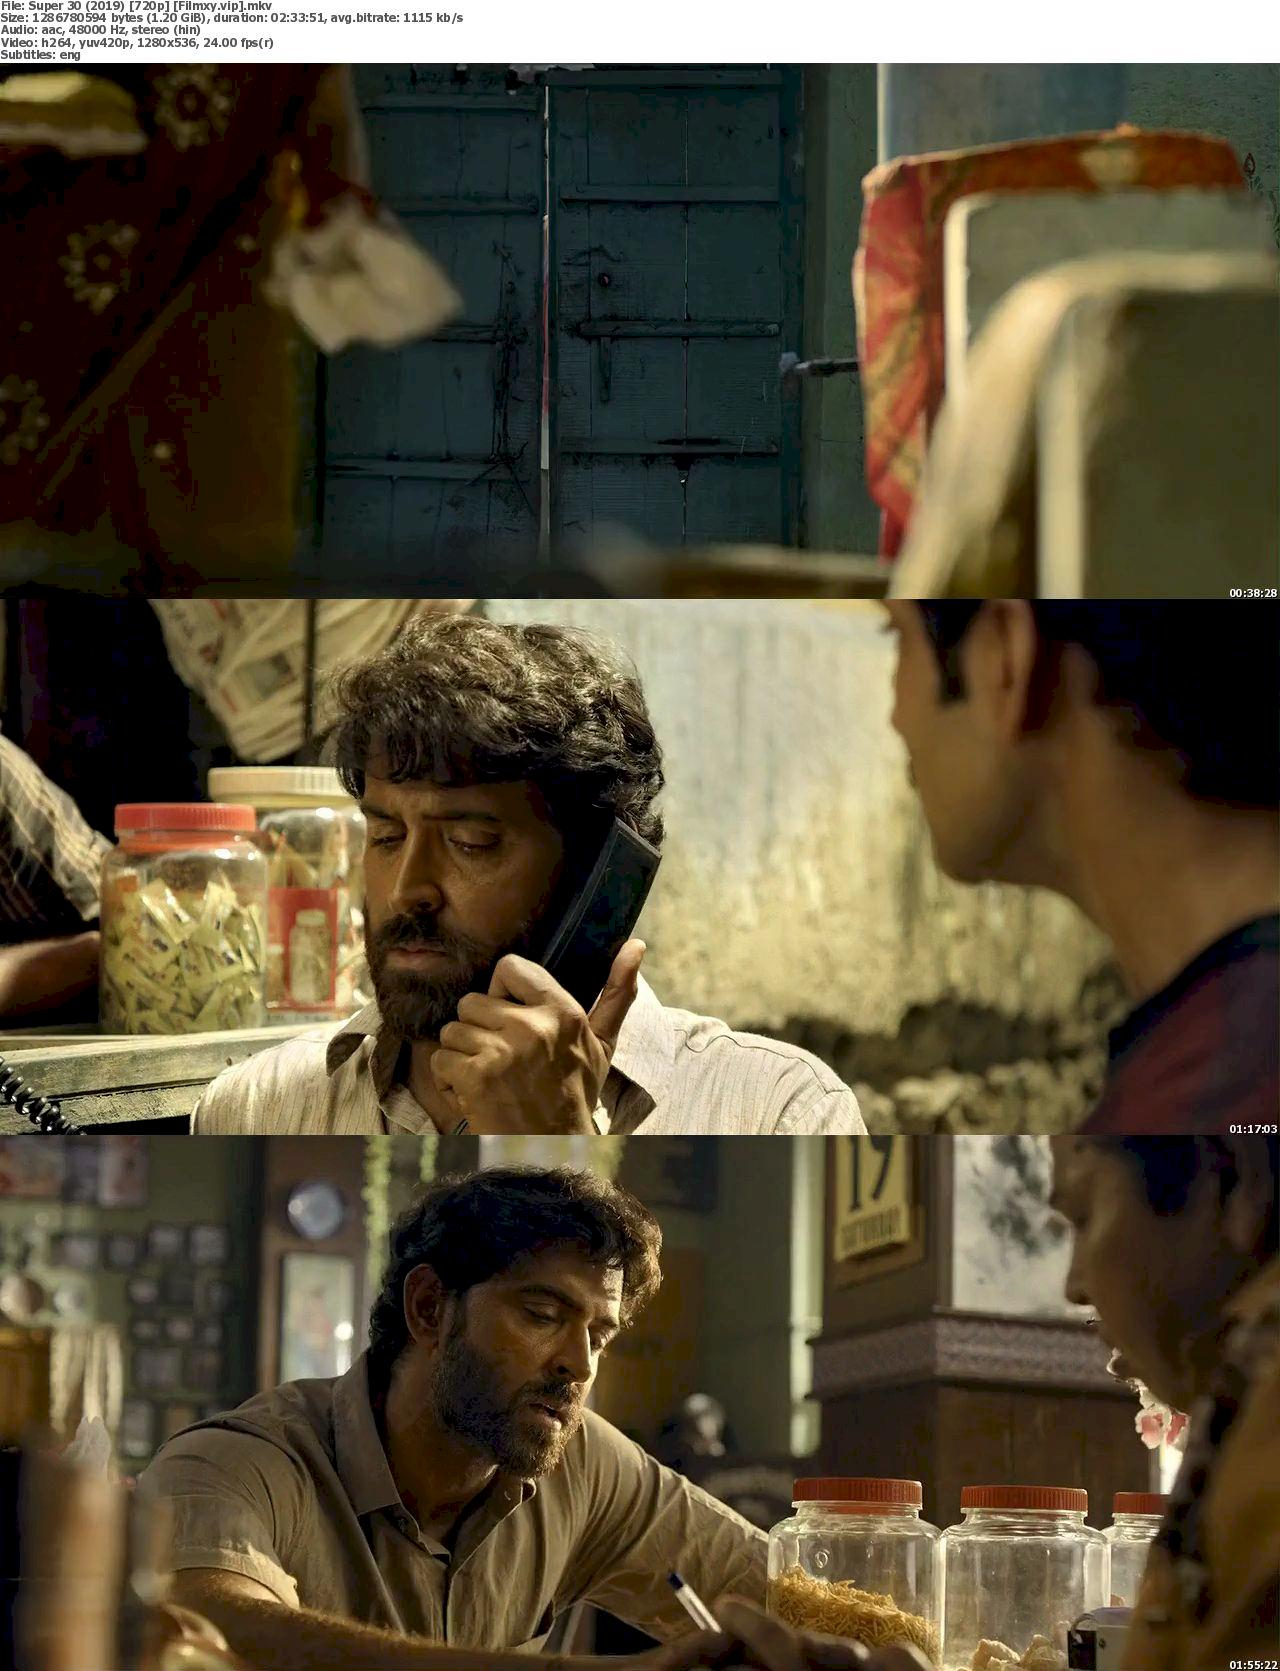 Super 30 (2019) [720p & 1080p] WEB-Rip Free Movie Watch Online & Download 720p Screenshot